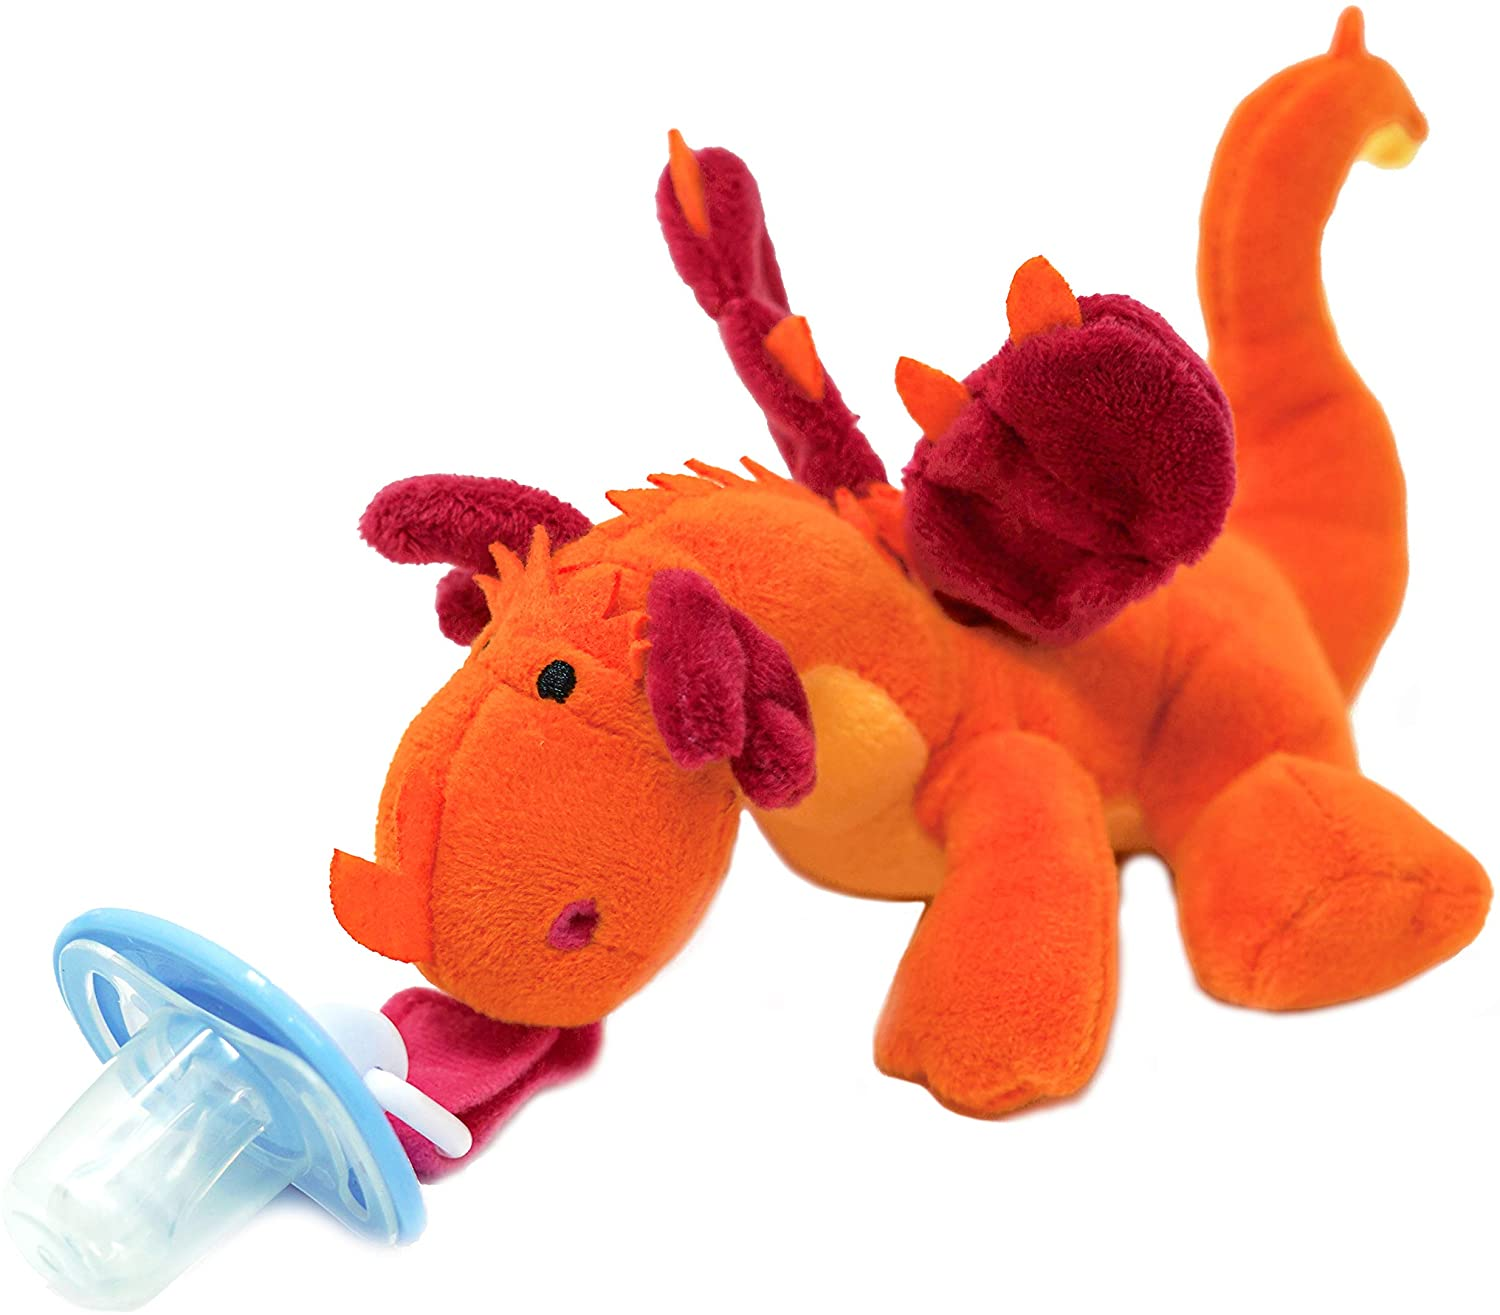 Dragon Pacifier Holder, Pacifier Stuffed Animal - Plush Toy Includes Detachable Pacifier, Use with Multiple Brand Name Pacifiers - Plush Stuffed Animal Infant Pacifier